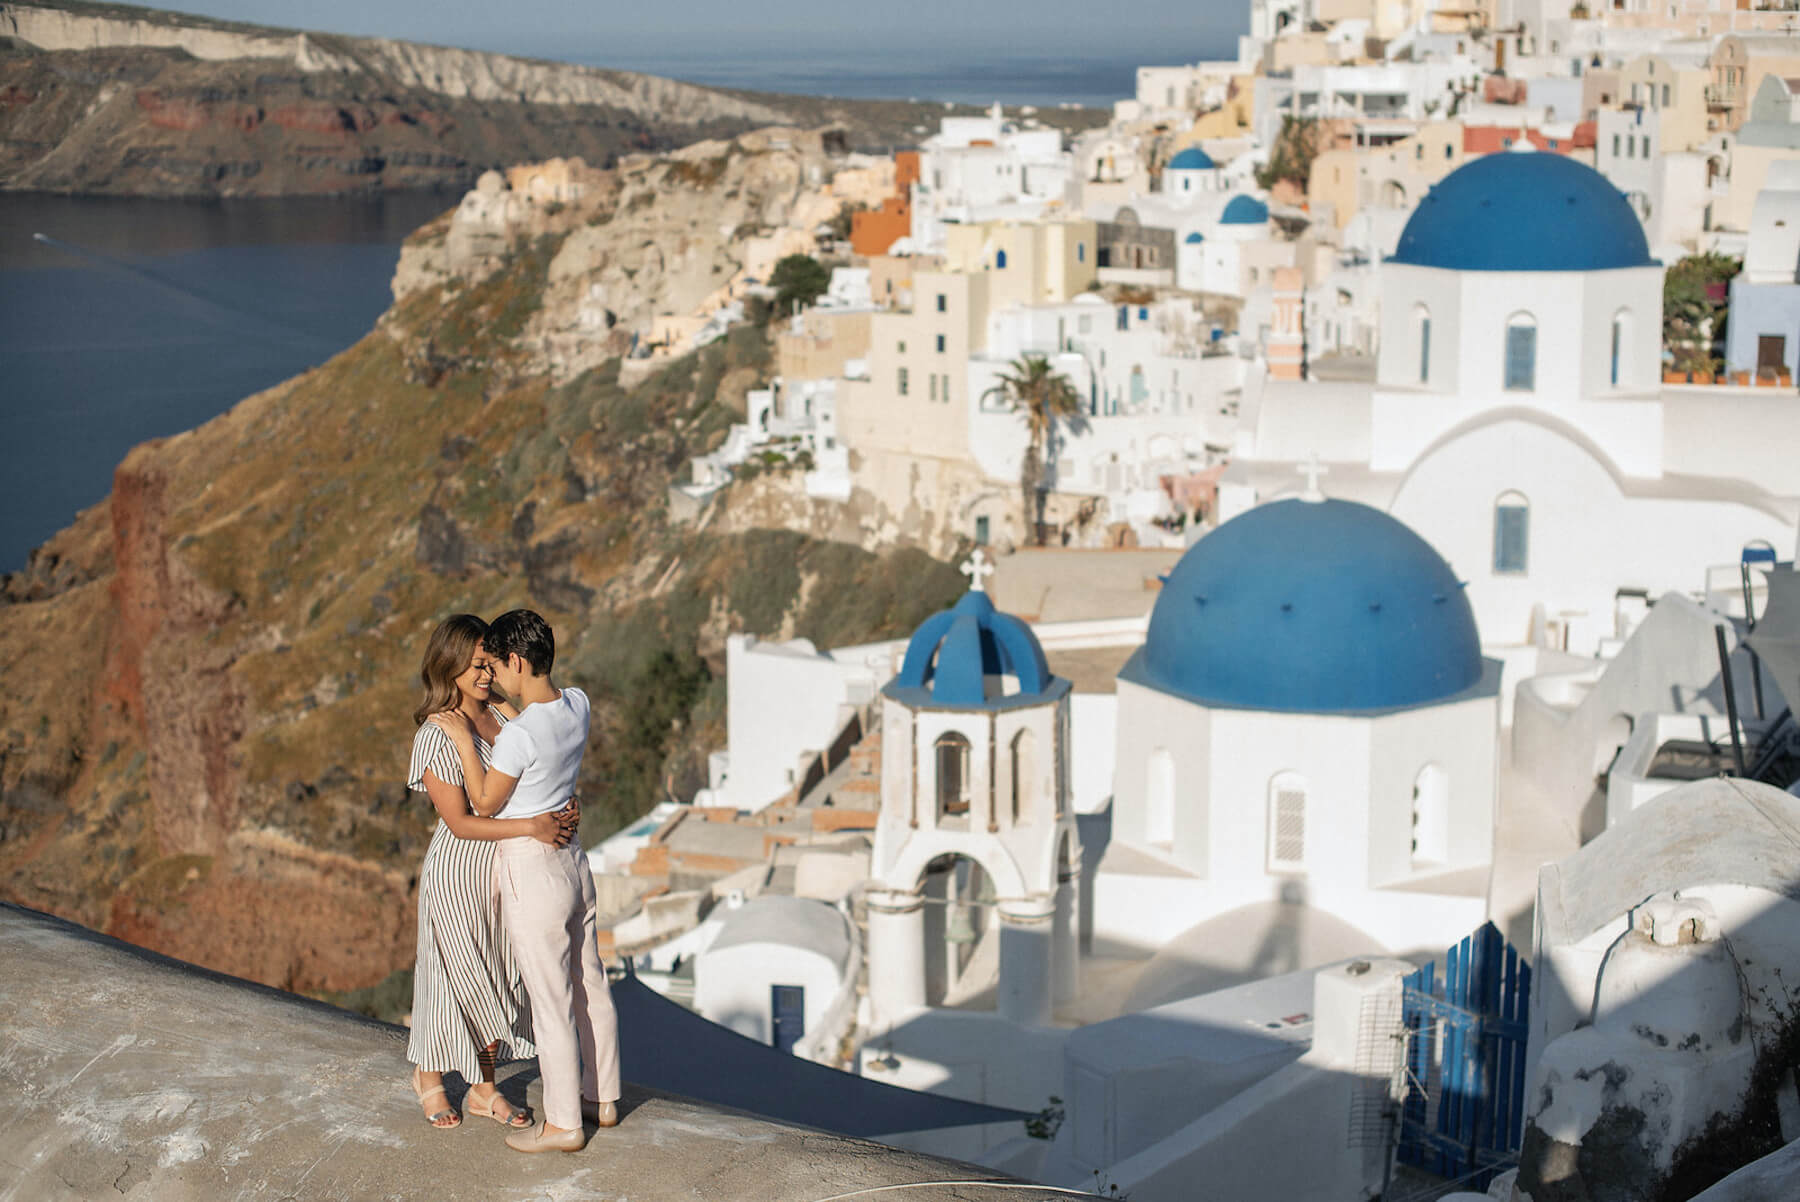 Couple enjoying the views surrounded by beautiful blue and white houses in Santorini